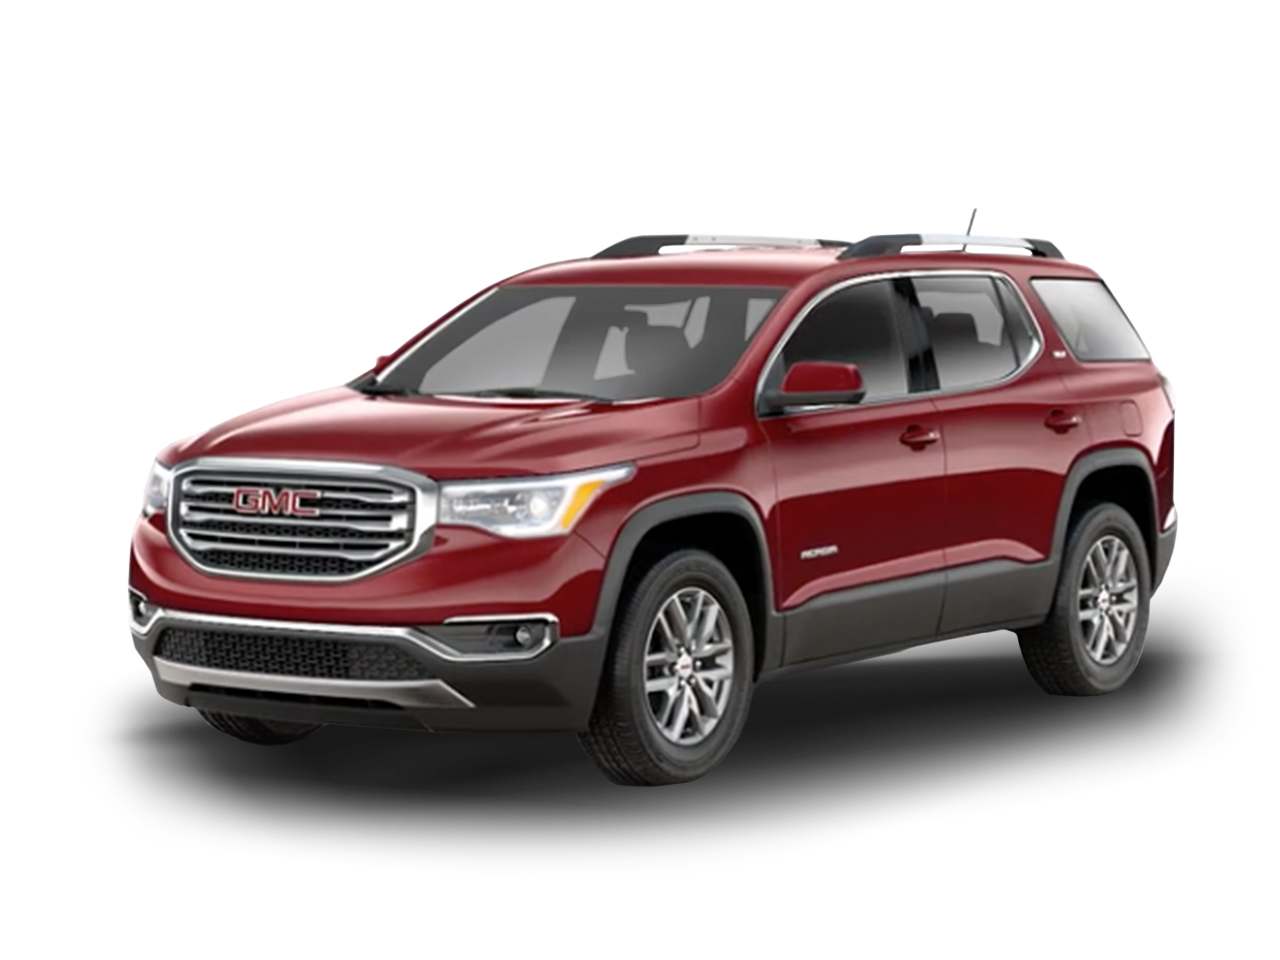 2018 gmc acadia price. simple price 2018 gmc acadia on gmc acadia price